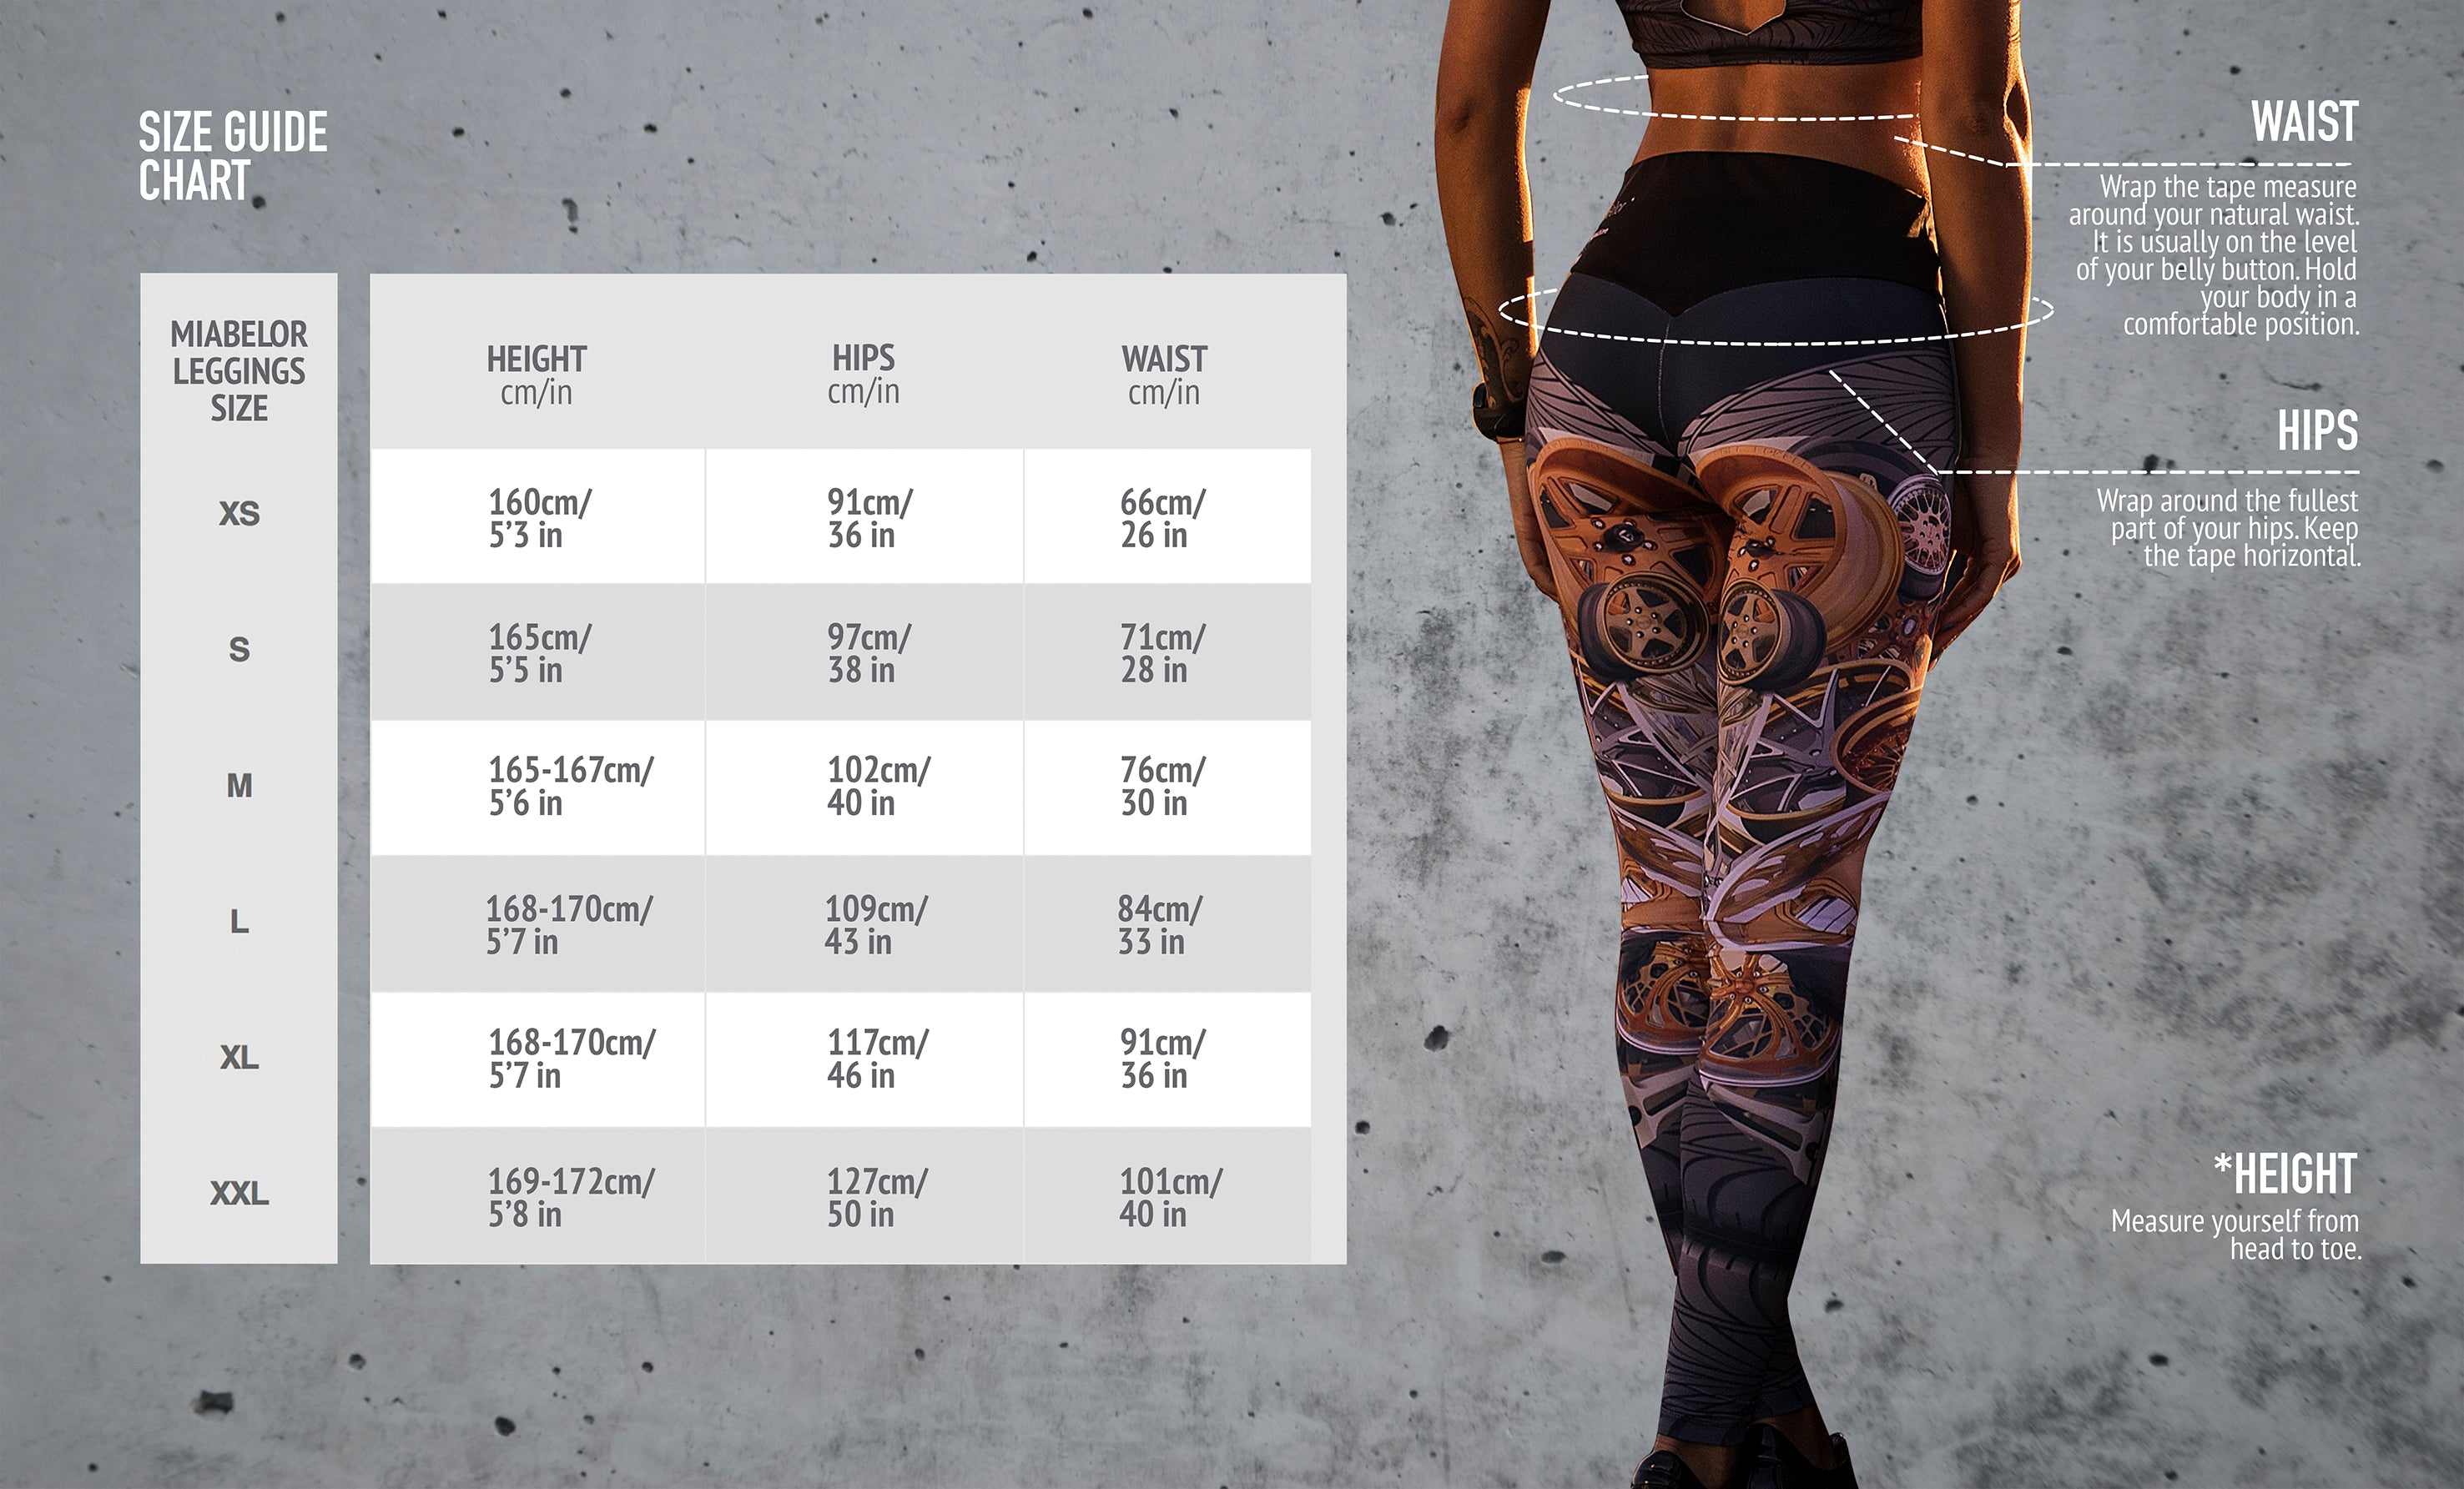 leggings size chart, miabelor size guide for yoga pants